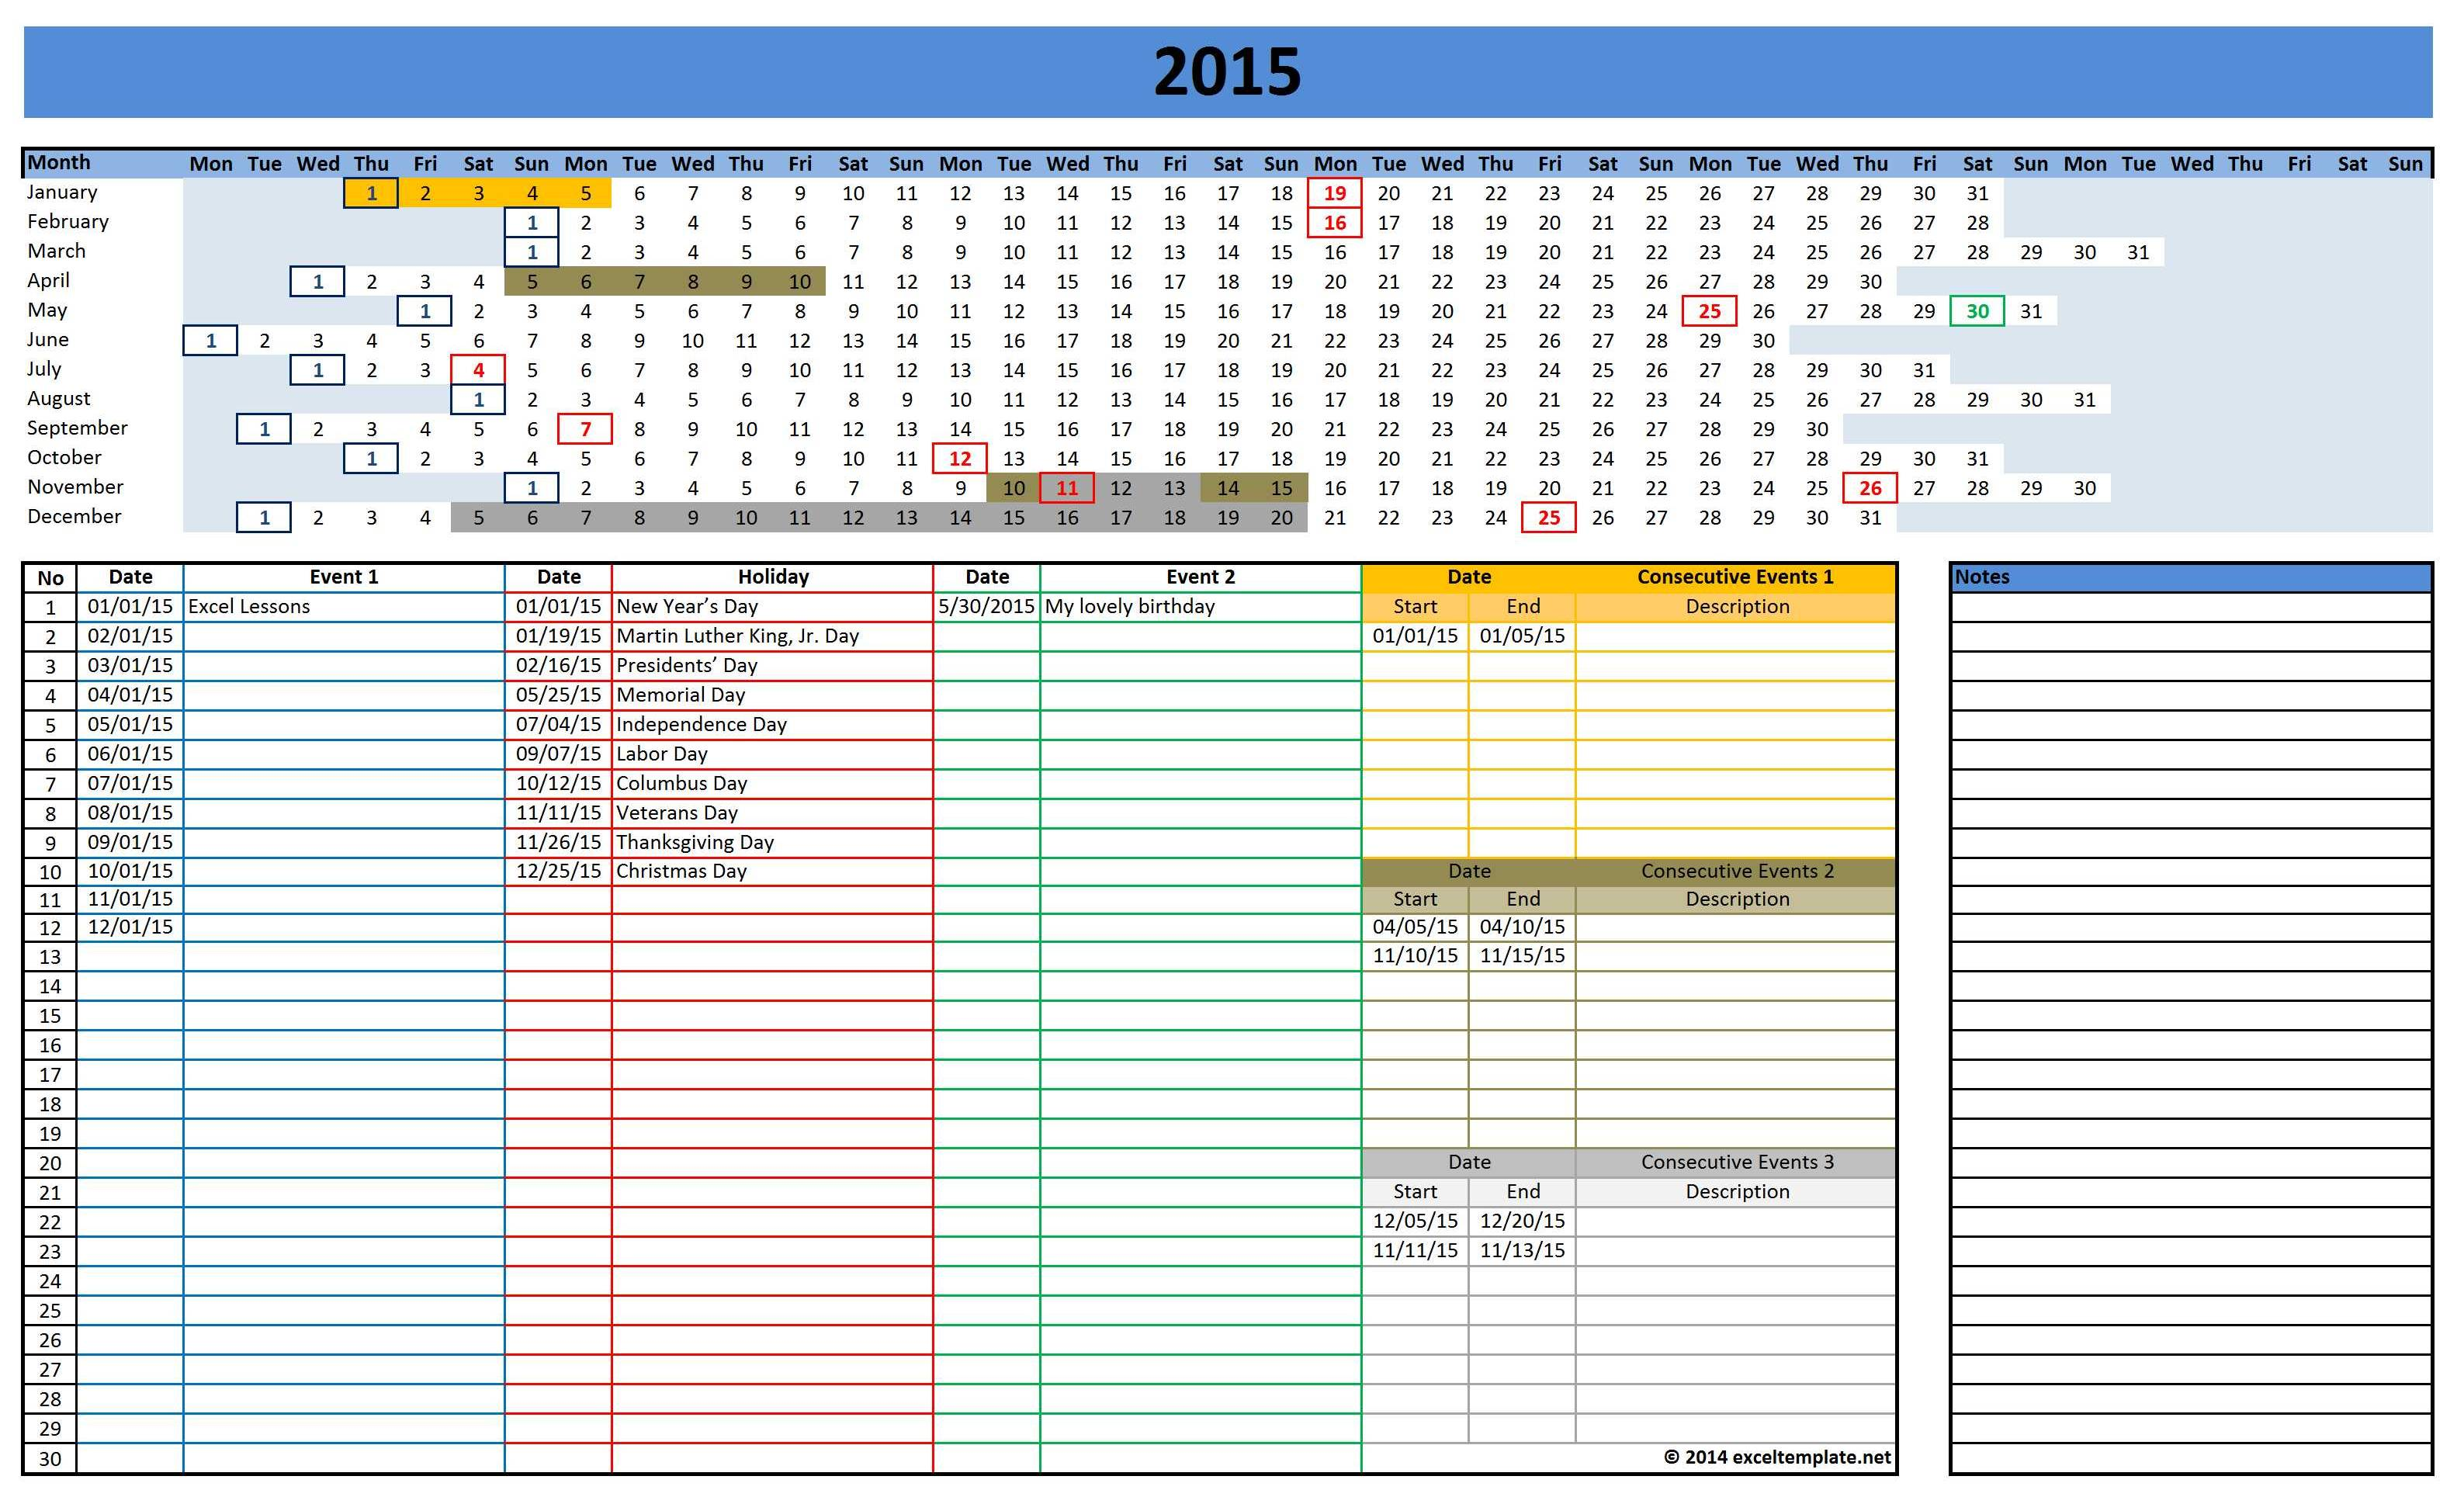 Calendar Templates For Excel : Calendars excel templates